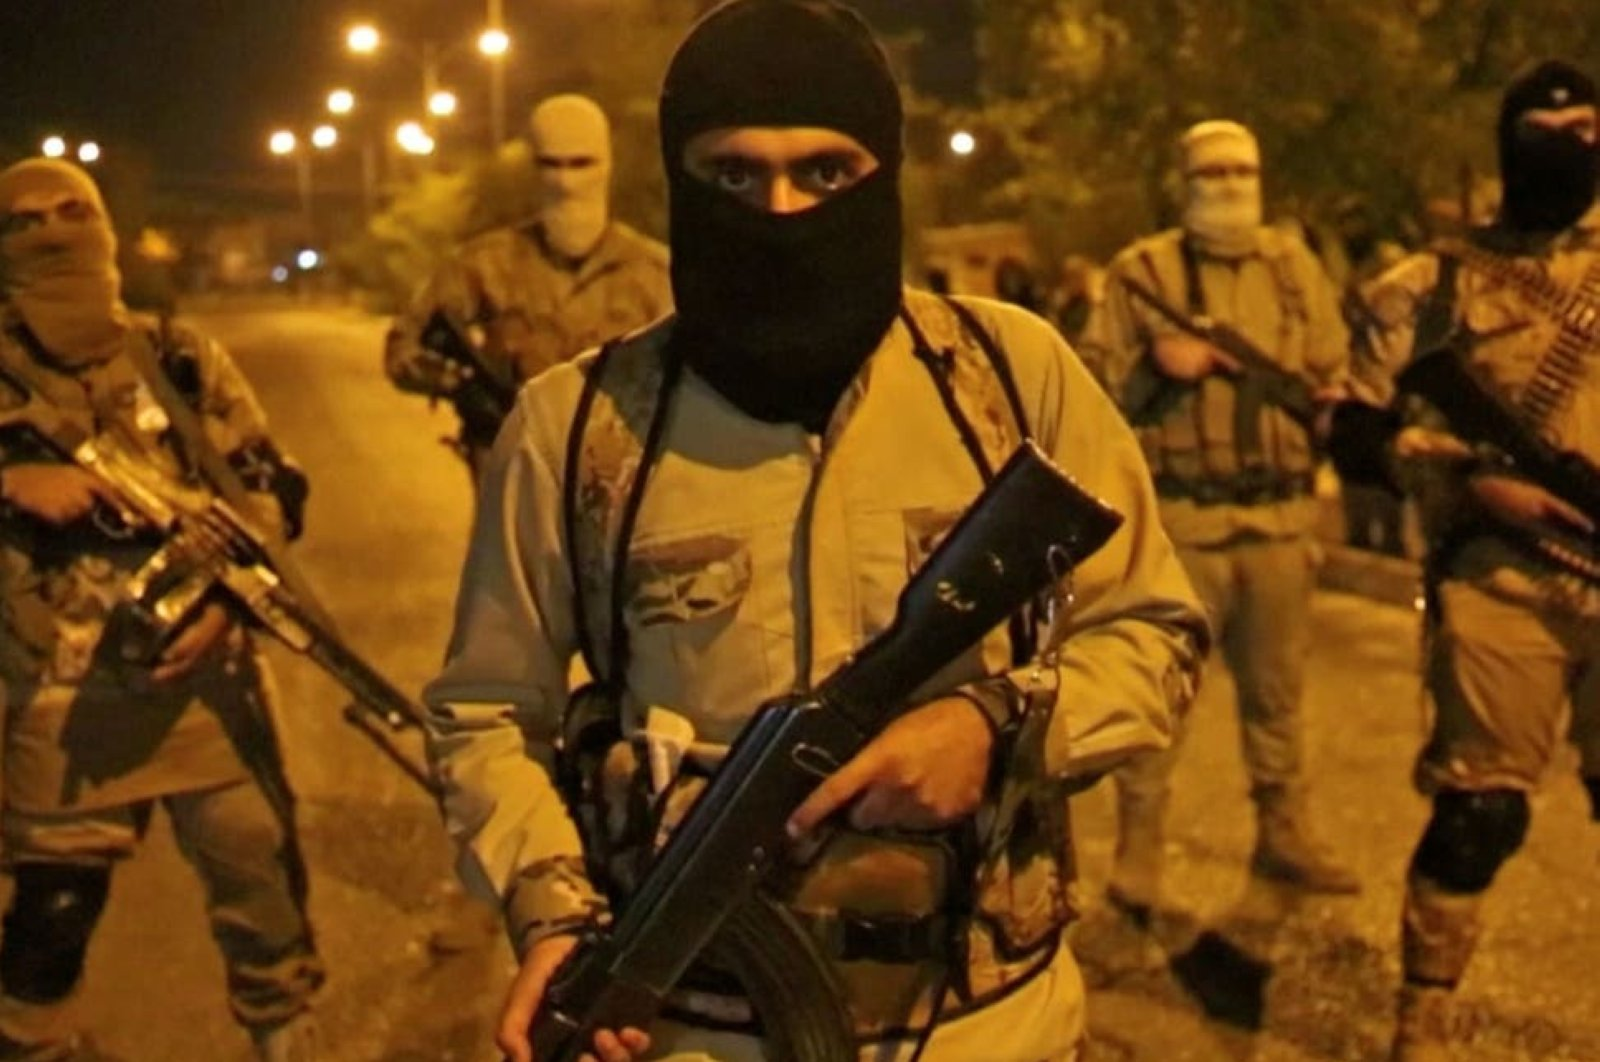 A screengrab from a video released through the Daesh terrorist group's Amaq news agency supposedly shows terrorists in Iraq's Mosul. (File Photo)